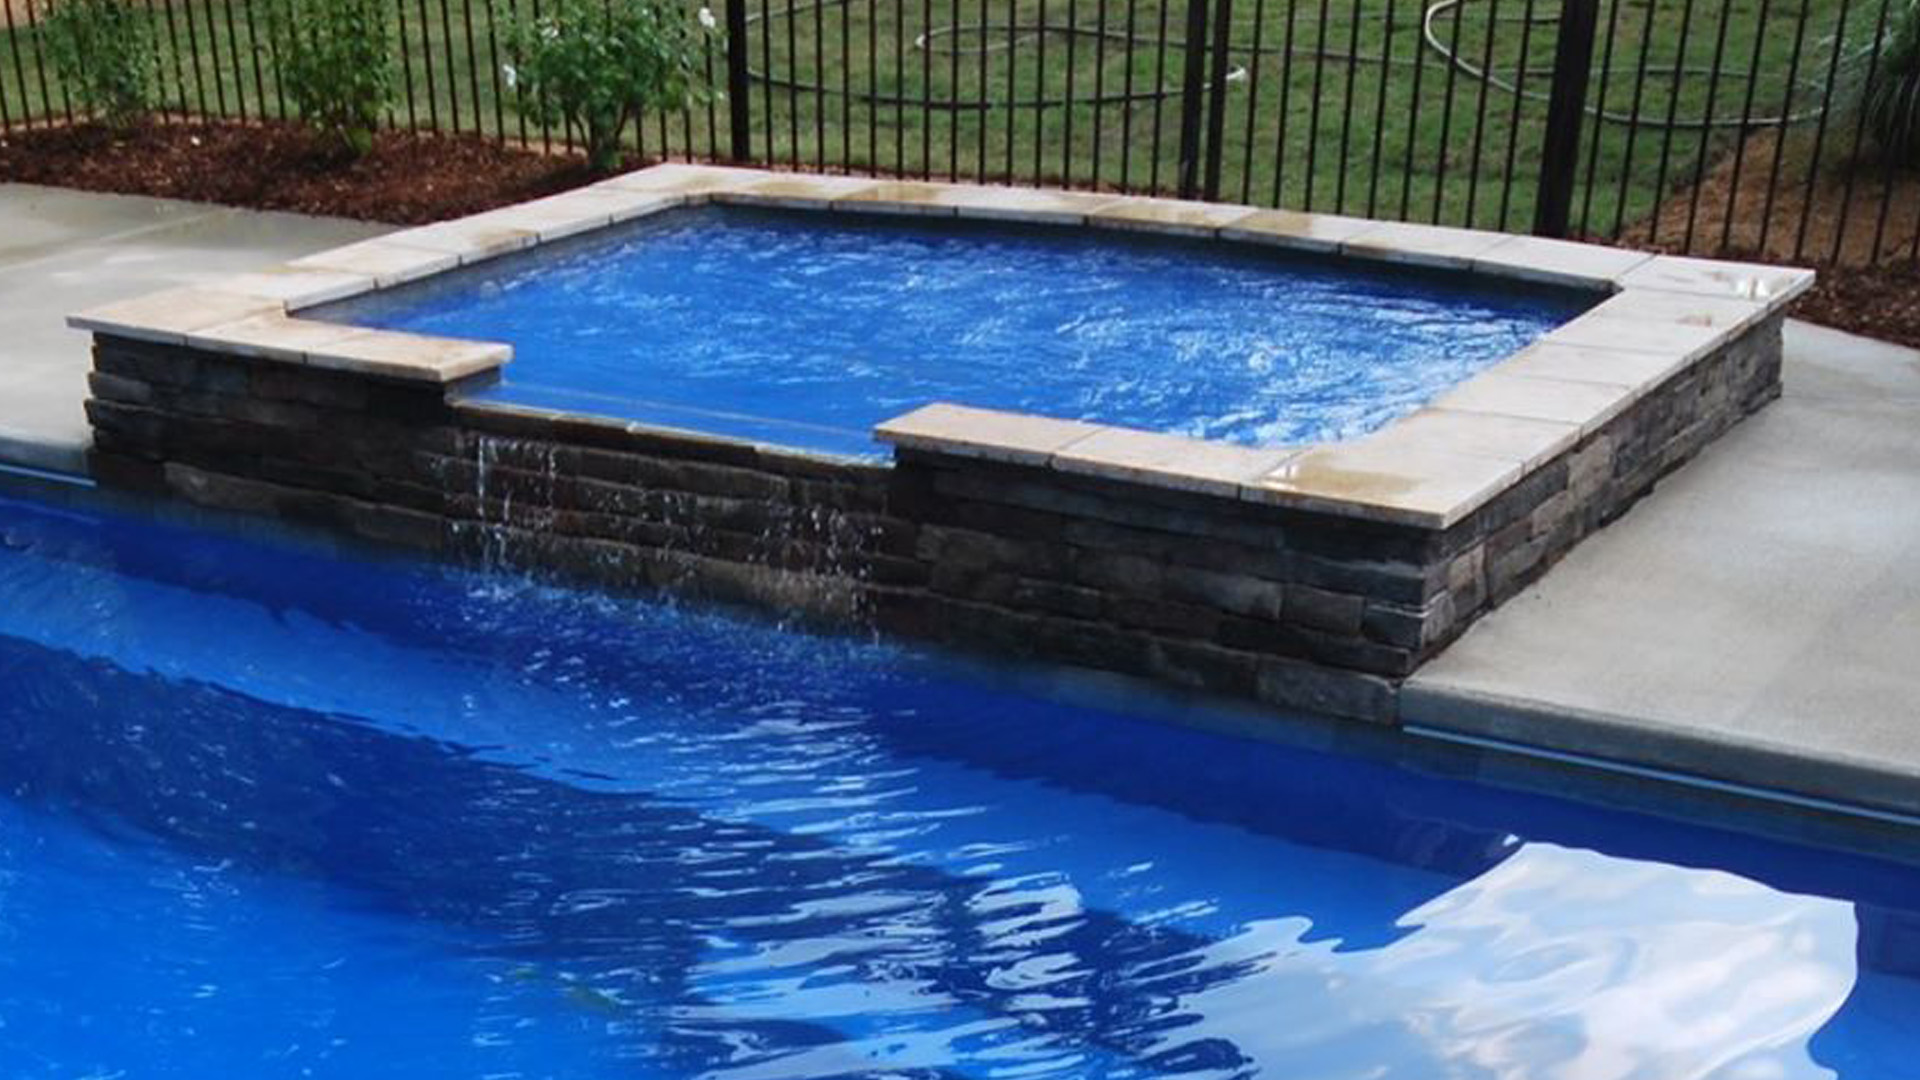 Family leisure little rock arkansas - Leisure Pools Designers Created This Ledge To Have Both A Curved Side And A Straight Side So That It Would Complement Almost Any Style Pool Within The